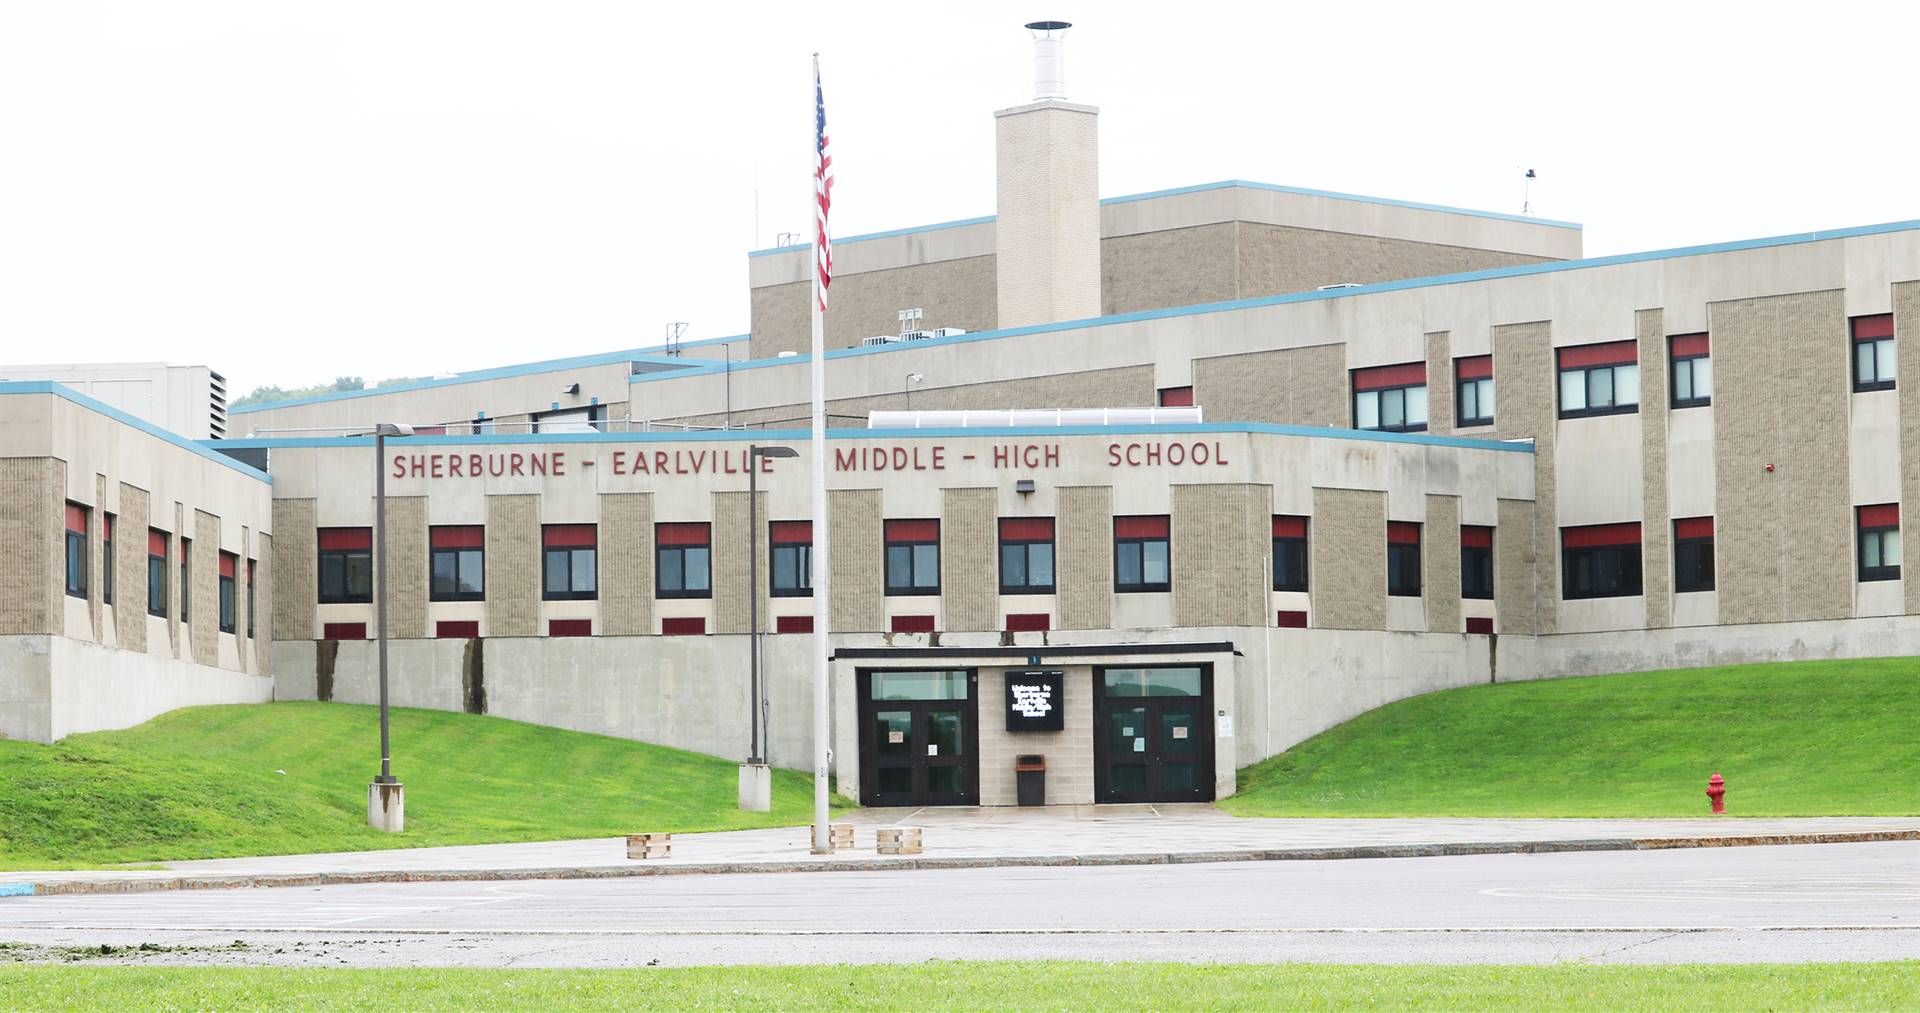 Sherburne-Earlville Middle-High School building